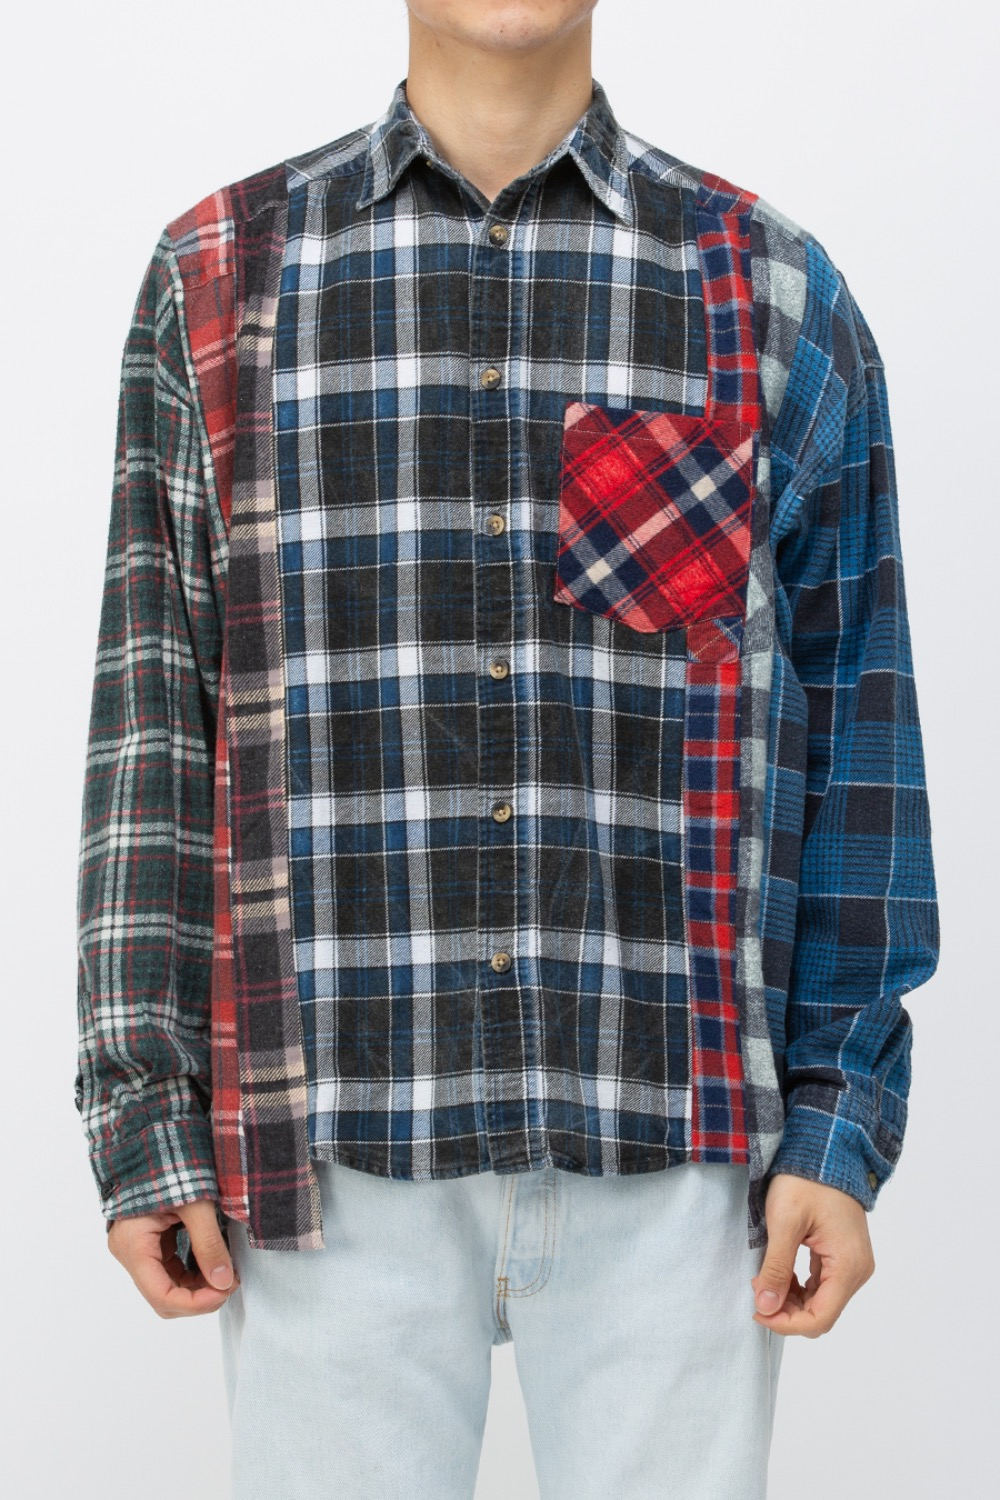 (WIDE-8)REBUILD BY NEEDLES FLANNEL SHIRT - 7CUTS WIDE SHIRT